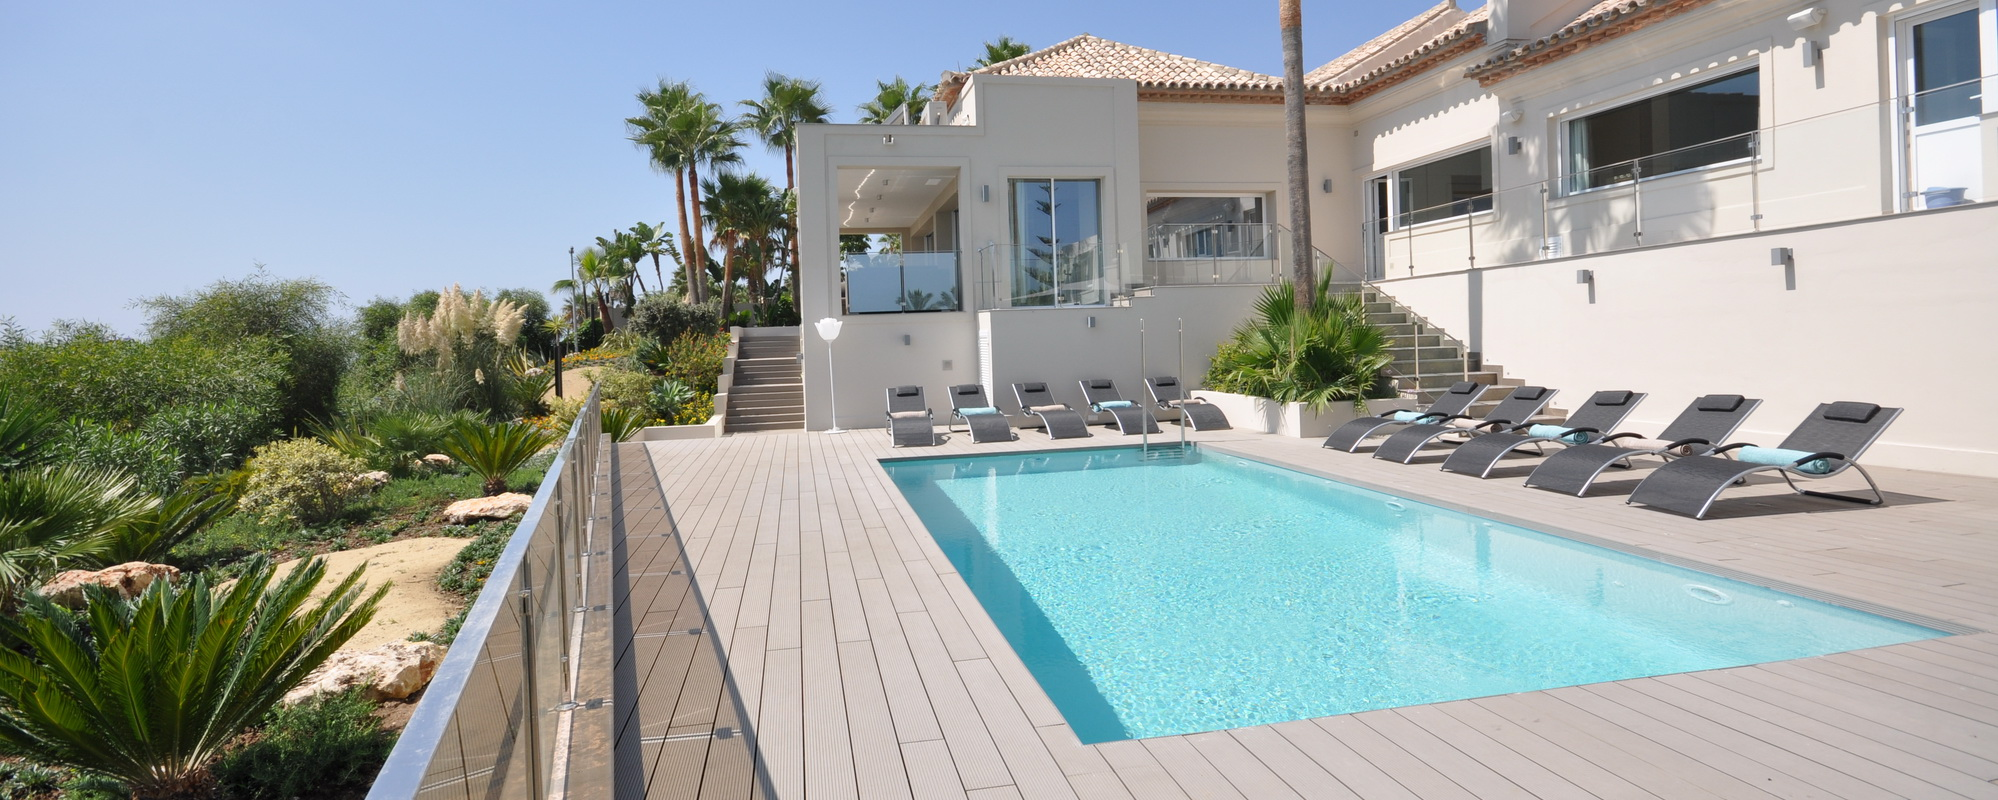 villa-valeta-new-golden-mile-estepona